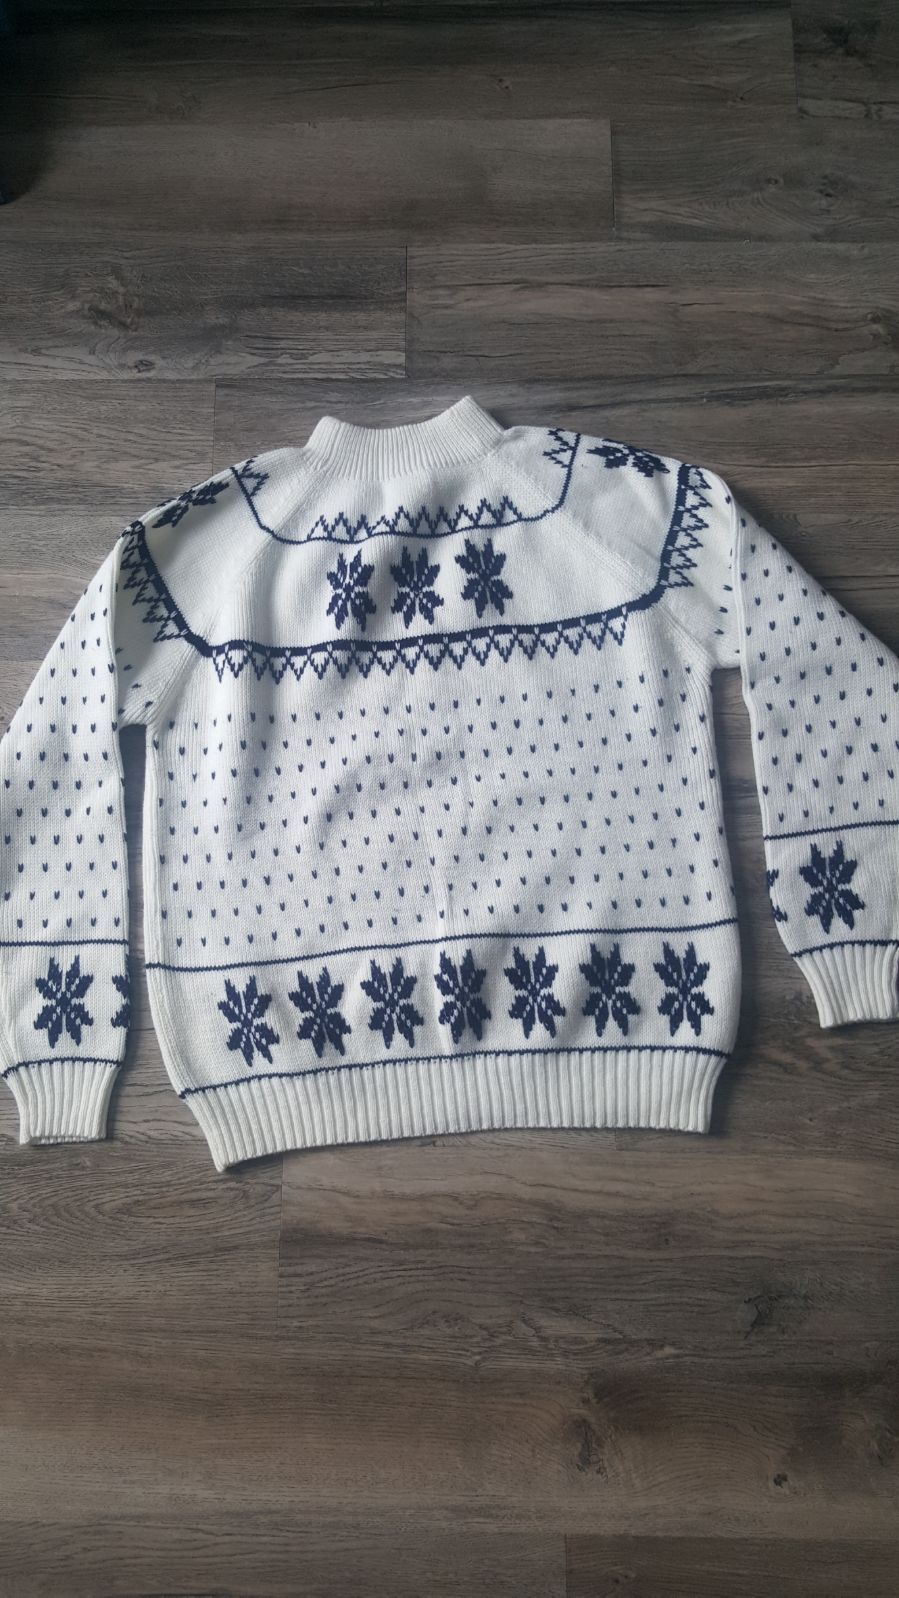 Thick vintage winter sweater